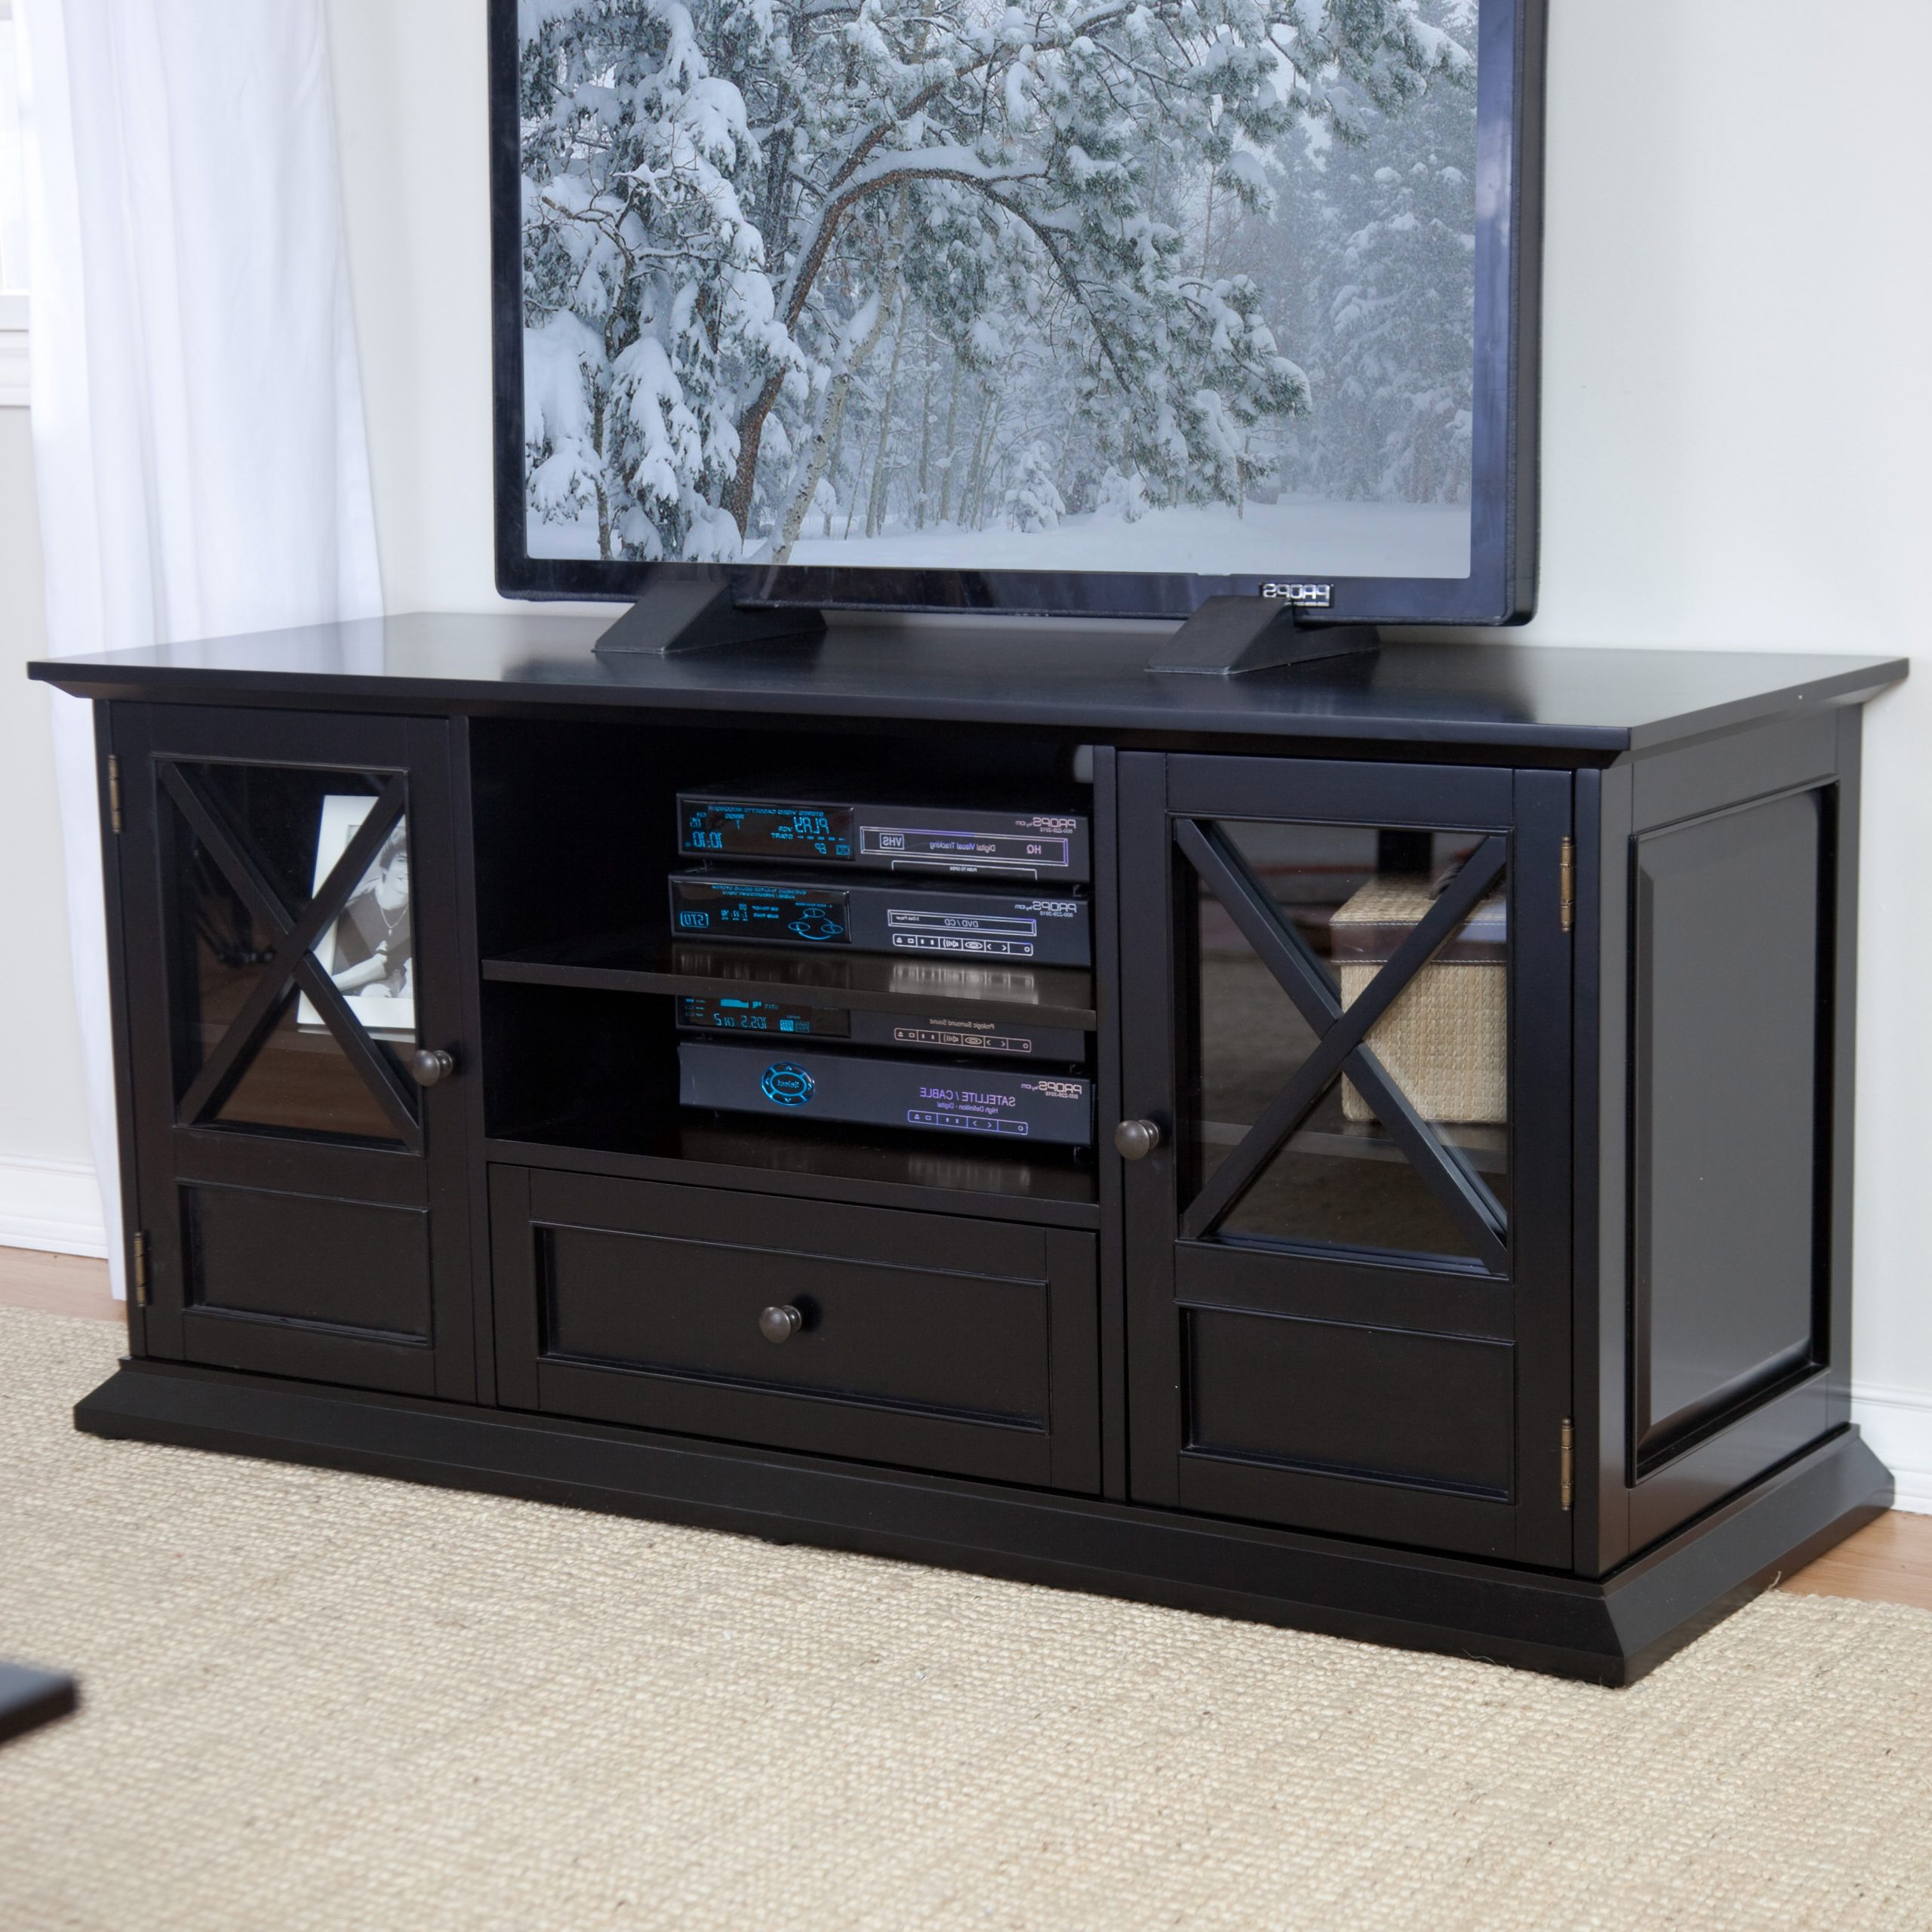 Most Current Belham Living Hampton 55 Inch Tv Stand – Black At Hayneedle Intended For Greenwich Wide Tv Stands (View 3 of 10)